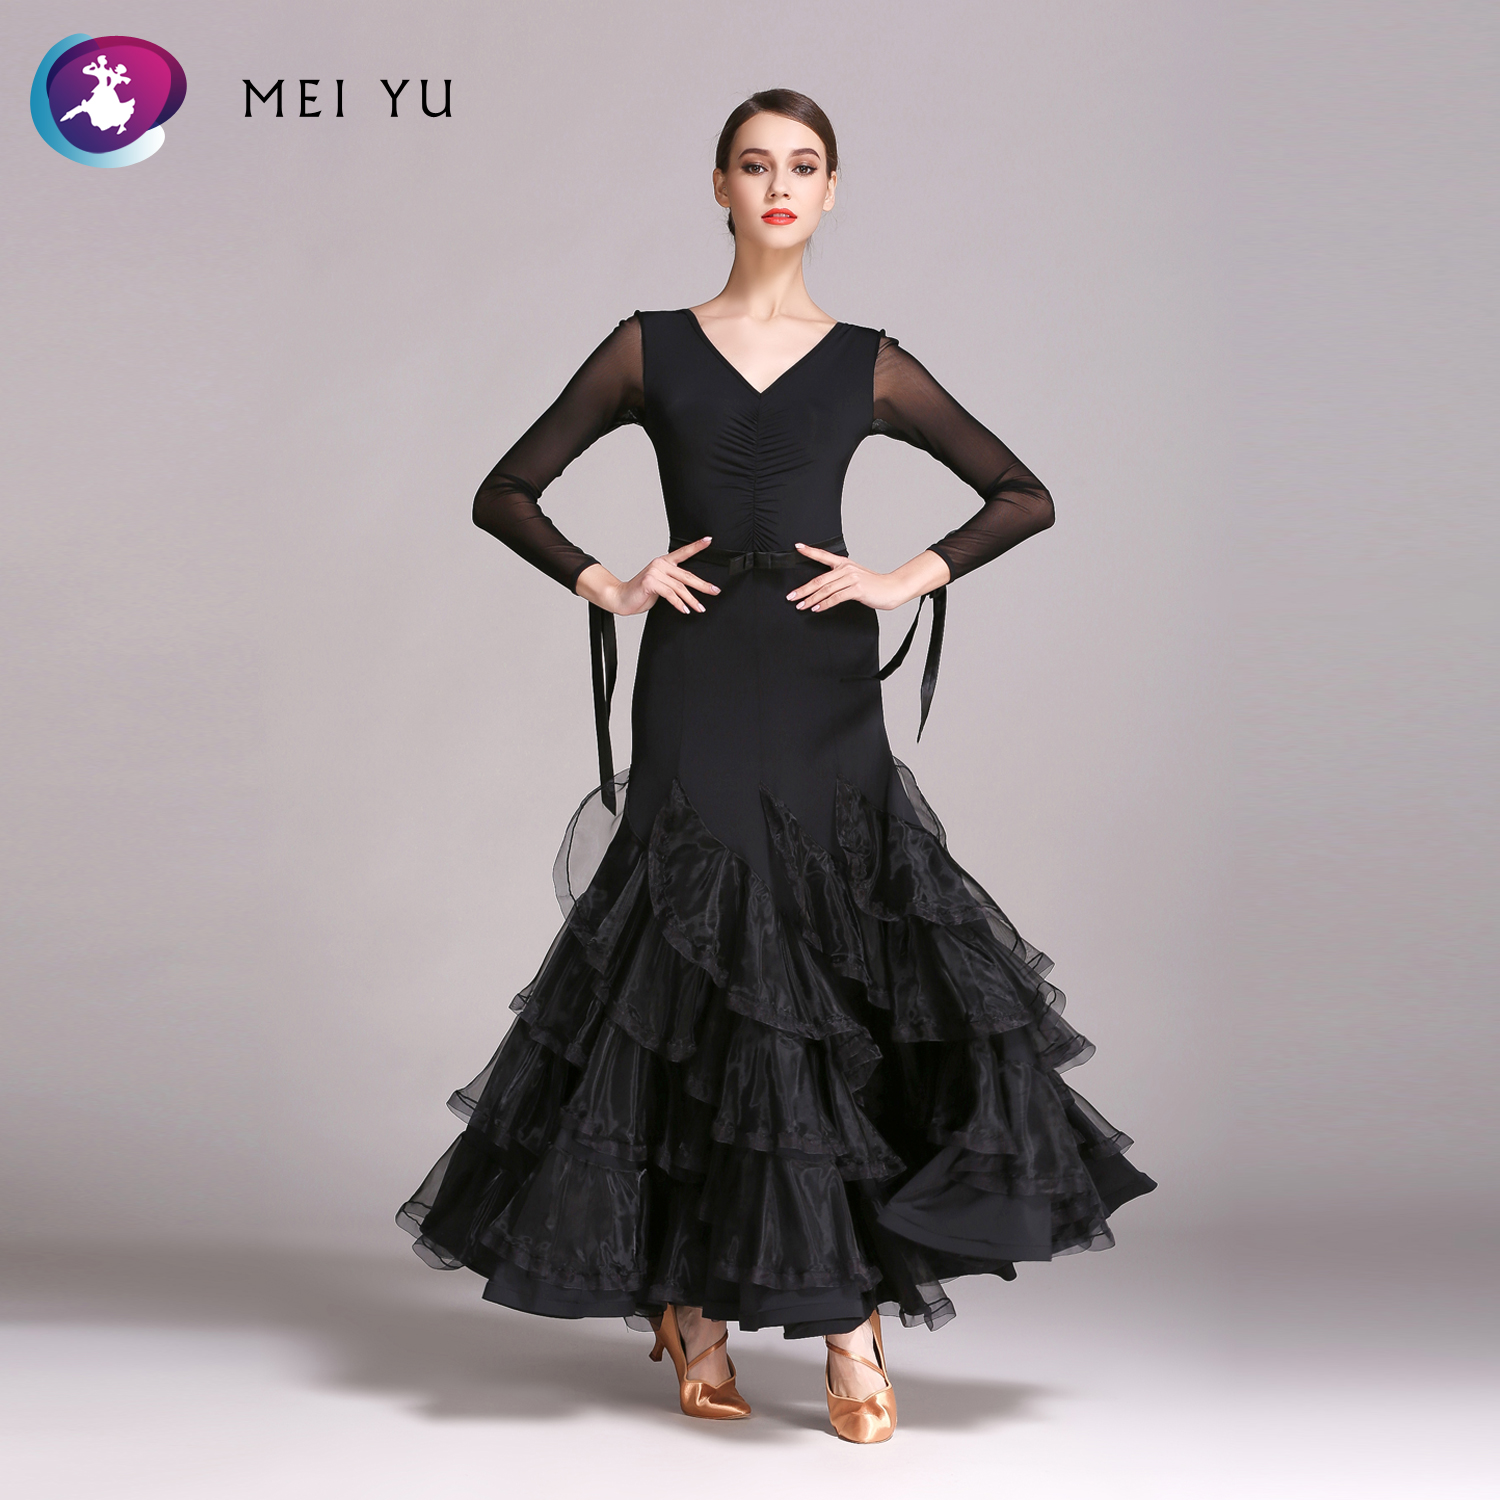 Novelty & Special Use Sweet-Tempered Mei Yu Gb490 Modern Dance Costume Women Lady Adult Dancewear Waltzing Tango Fish-tail Ballroom Costume Evening Party Dress Stage & Dance Wear